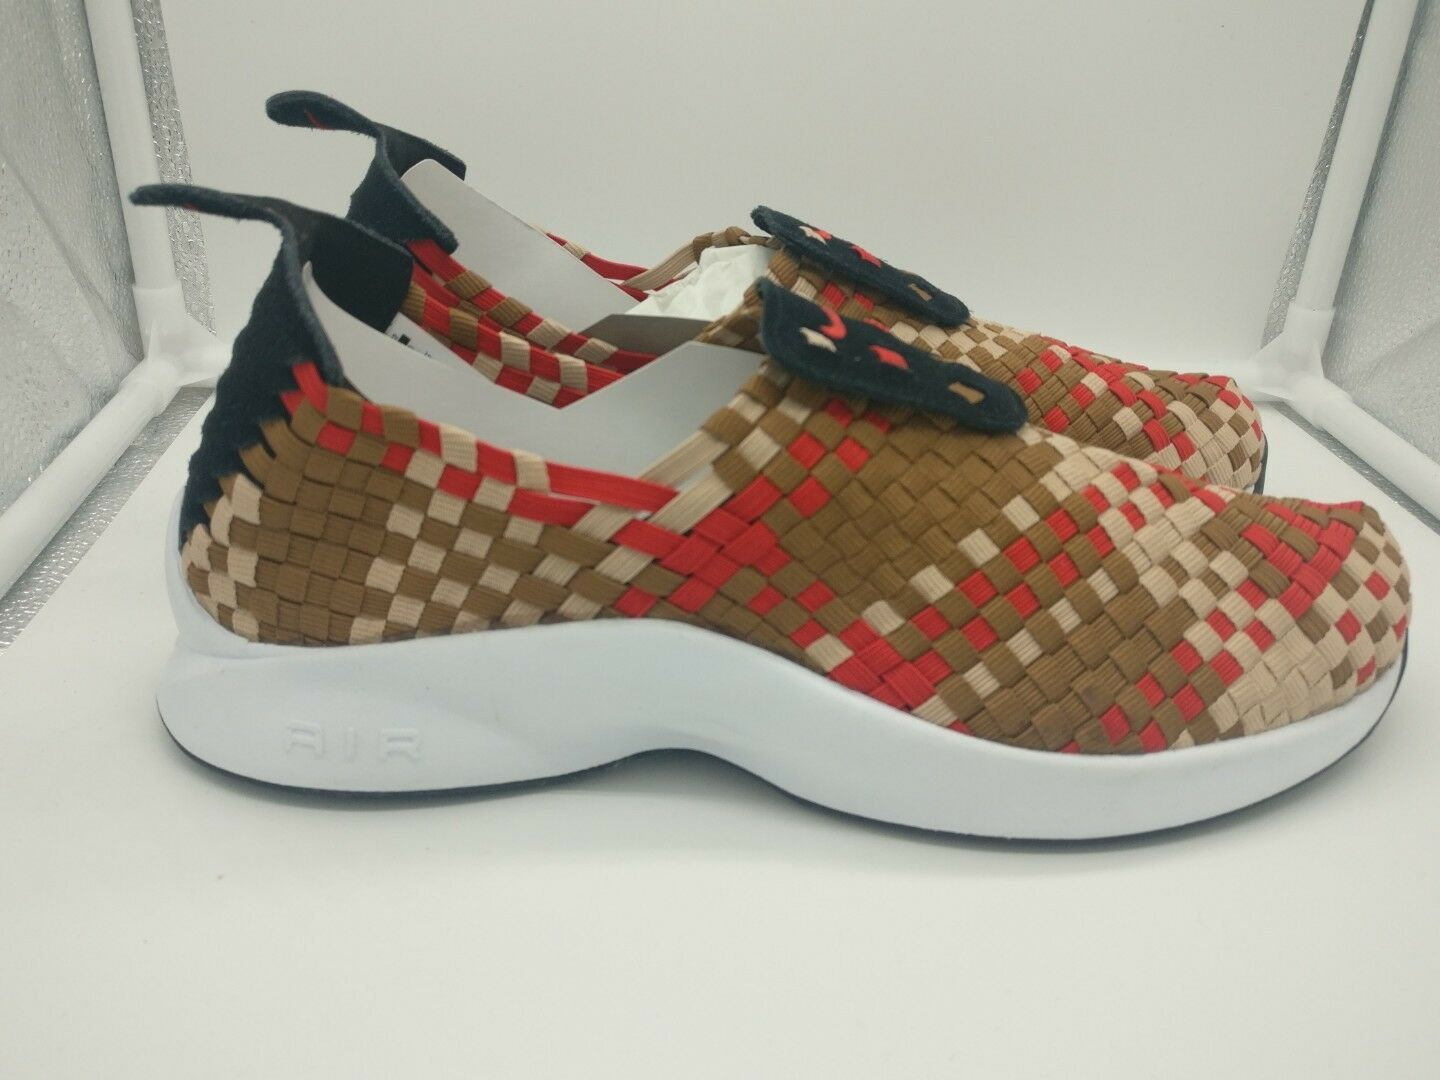 Nike Air Woven Black University Red Ale Brown 312422004 RARE